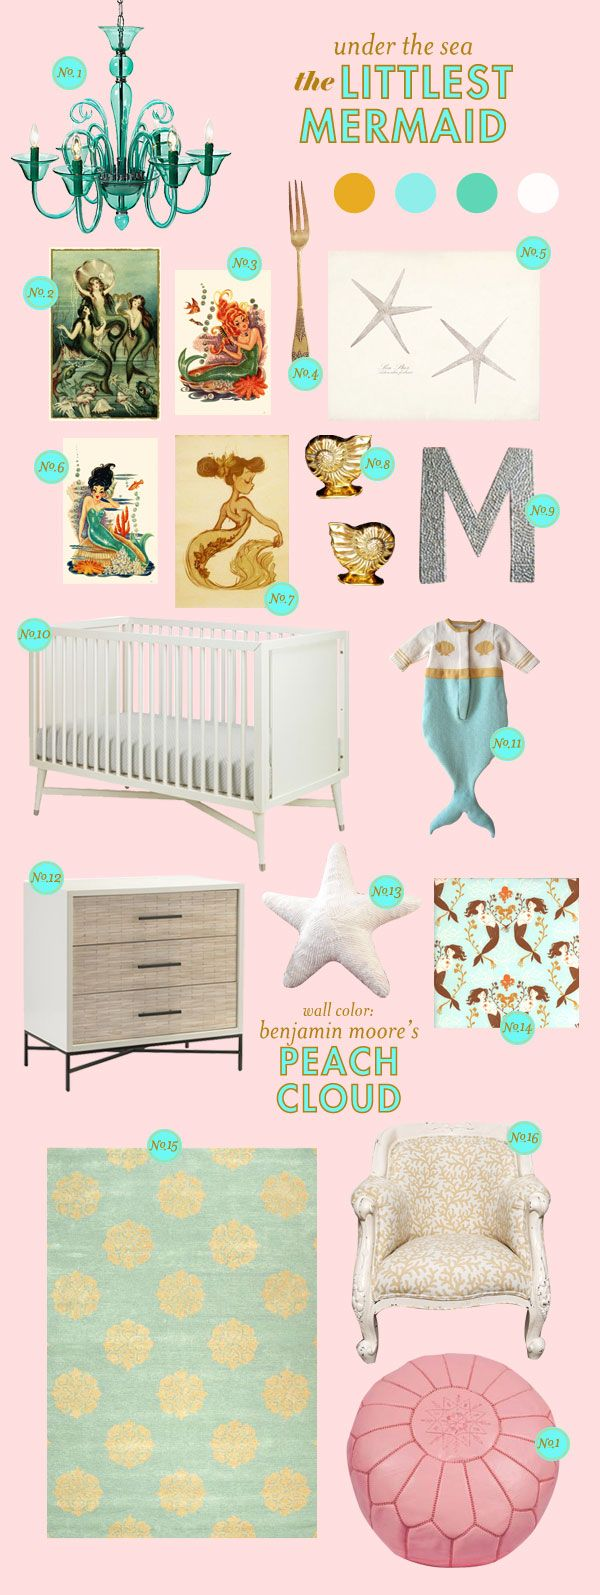 Mermaid Nursery: having some furniture with straight lines keeps the room from becoming too saccharine, but the peachy pink walls and dramatic chandelier make the room dreamy.